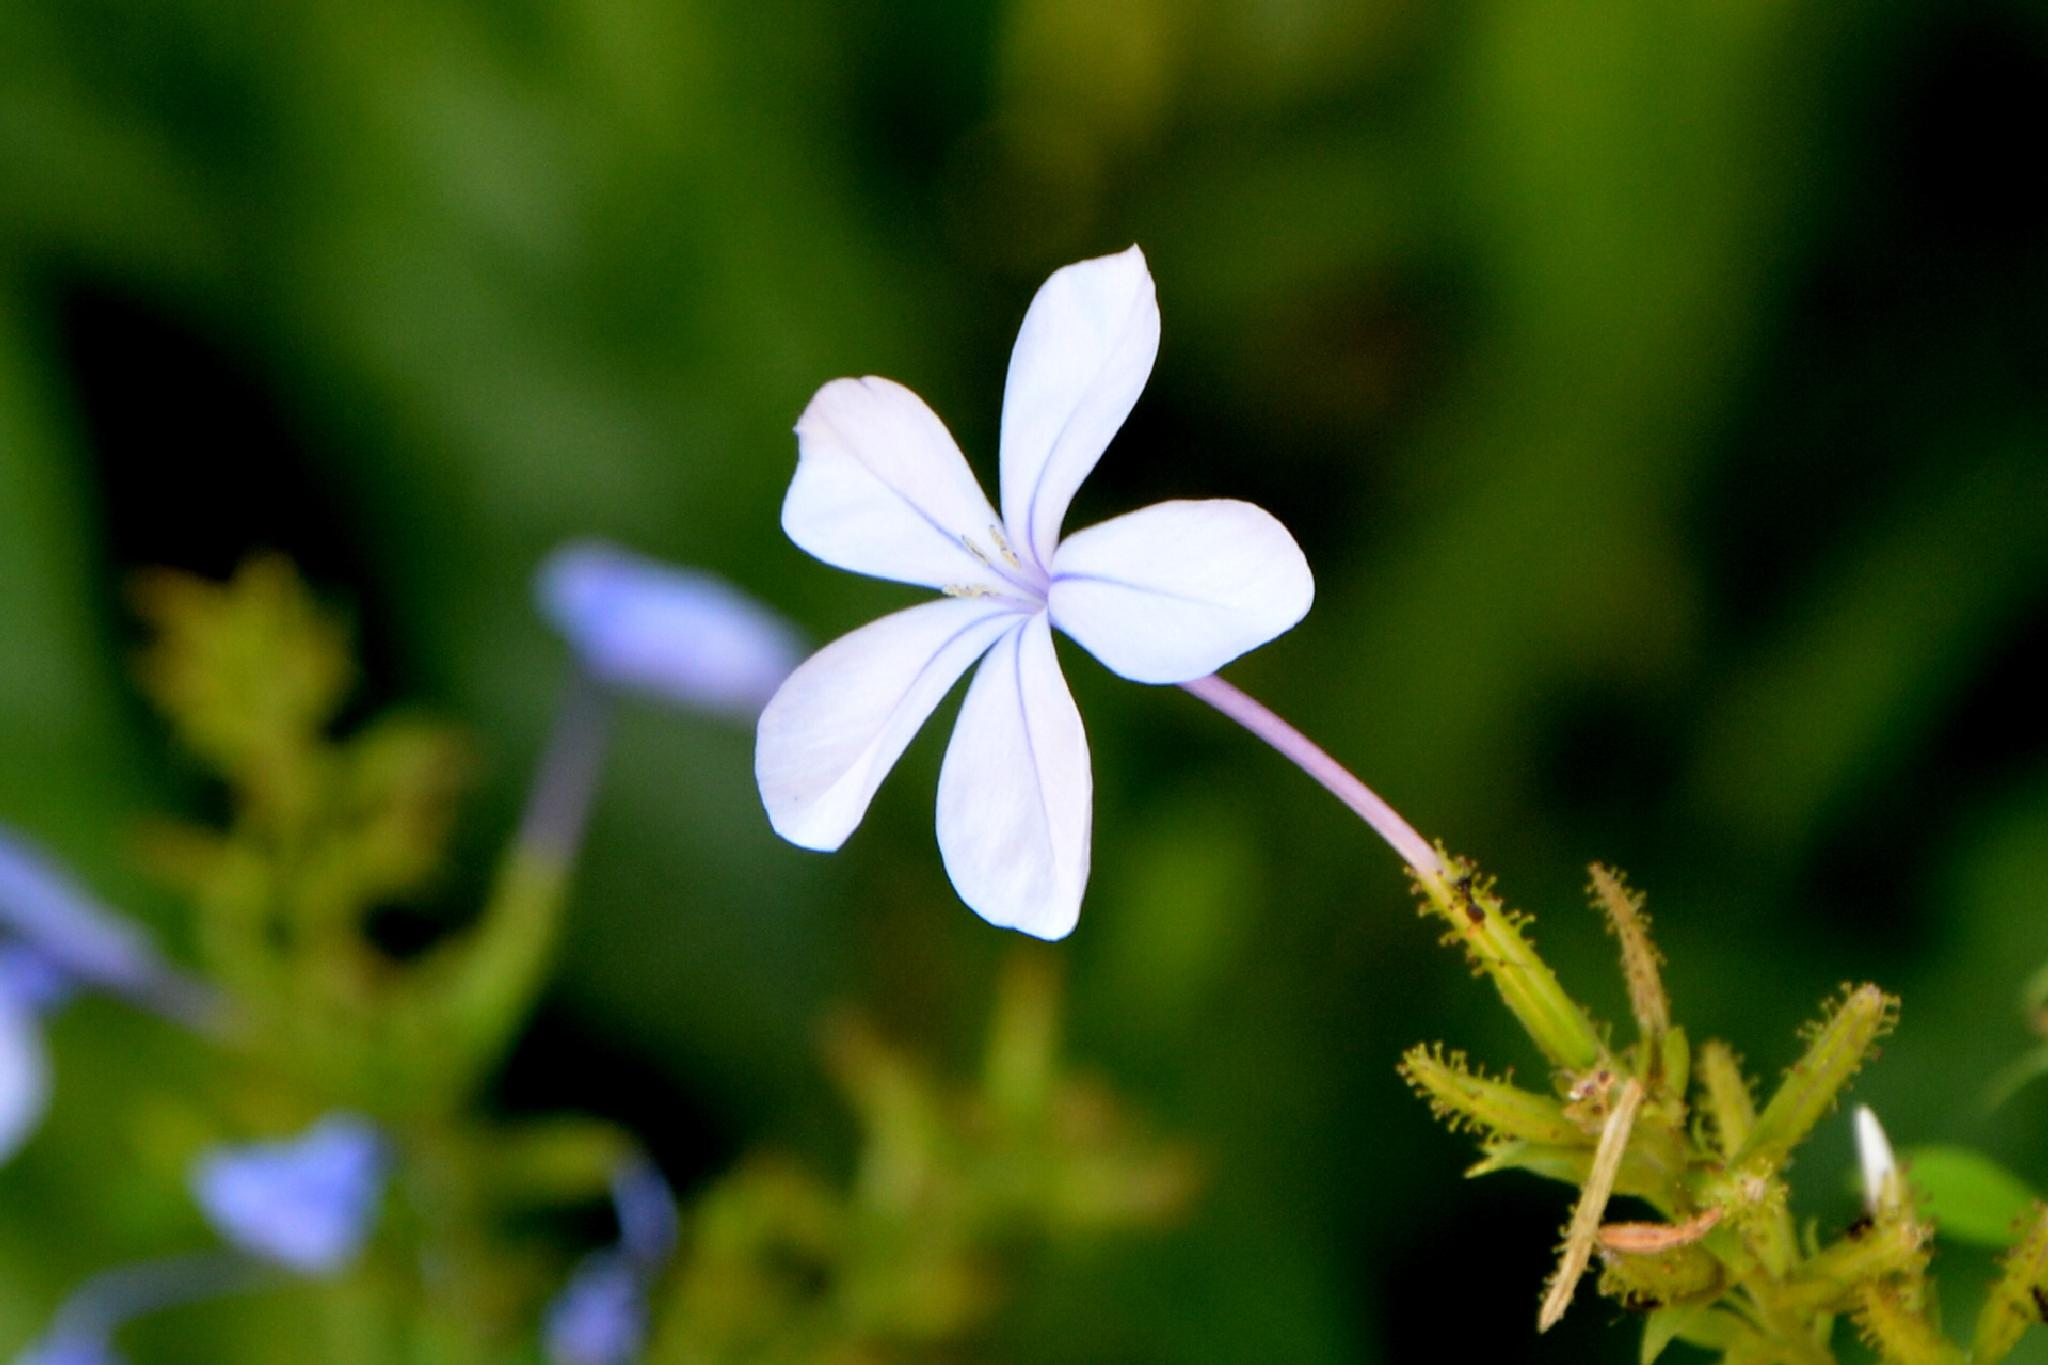 Small Flower by Nagendra Bhat